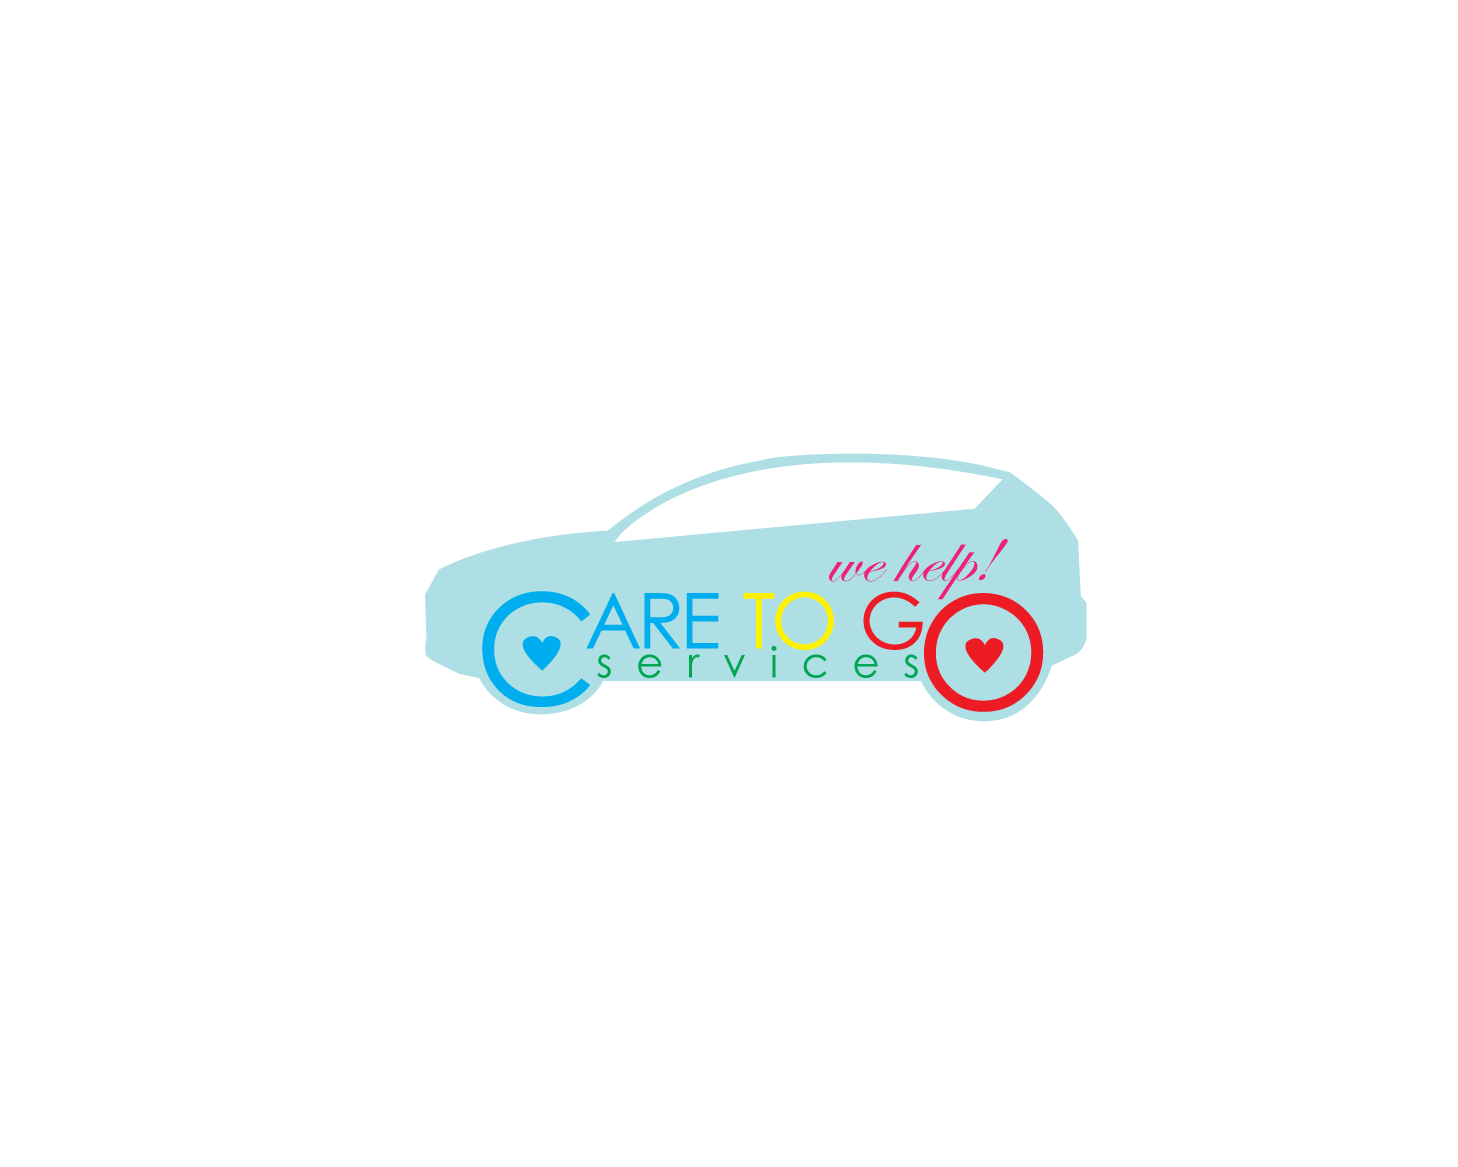 Logo Design by Roy Ferre - Entry No. 271 in the Logo Design Contest Care To Go Services.